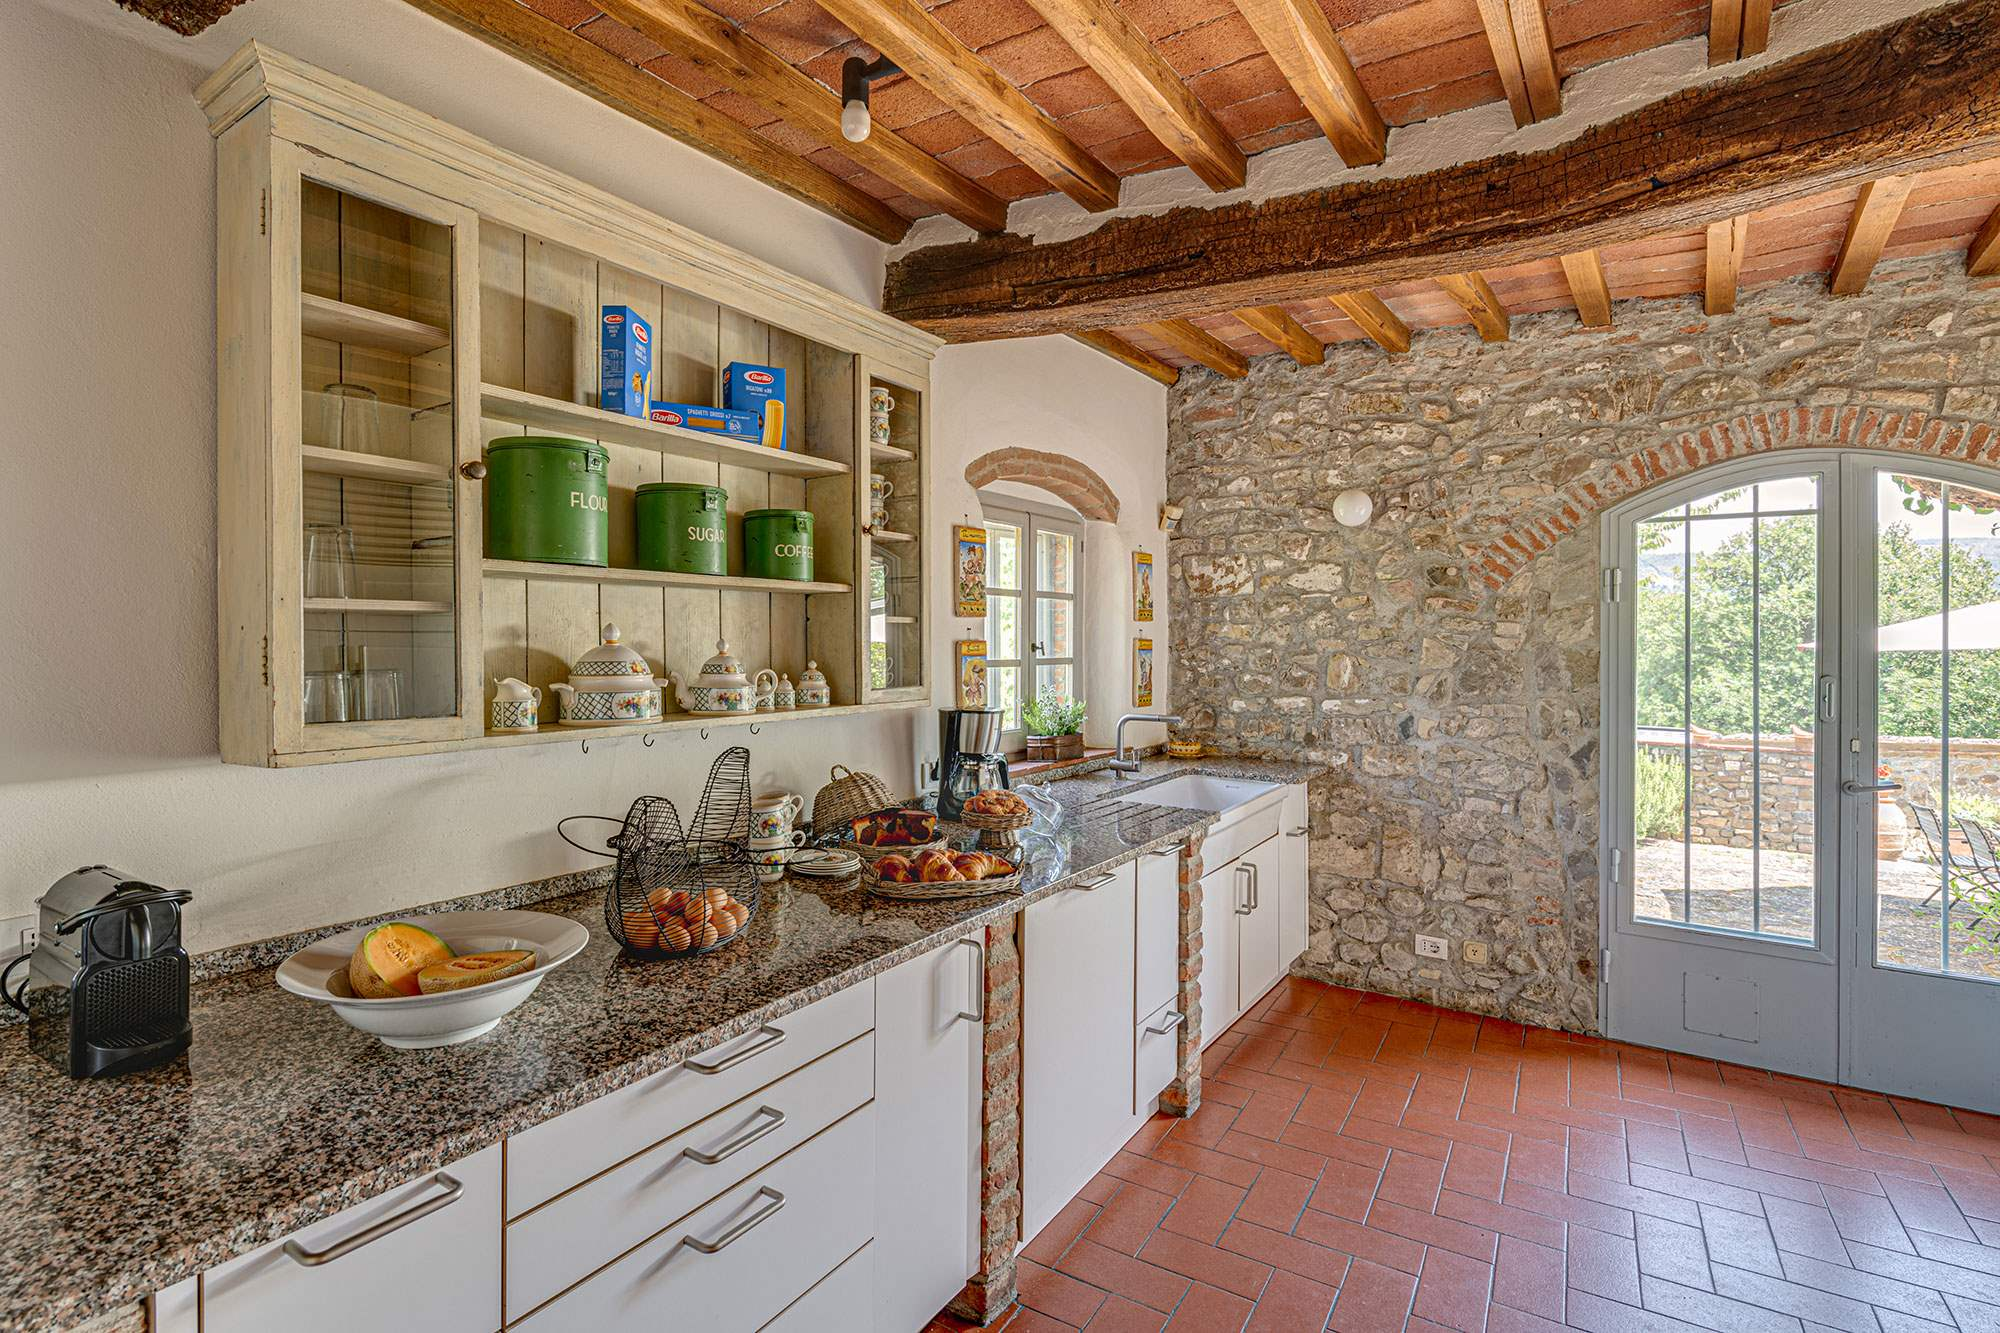 Villa Claudia, 6 Bedroom rate, 6 bedroom villa in Chianti & Countryside, Tuscany Photo #10